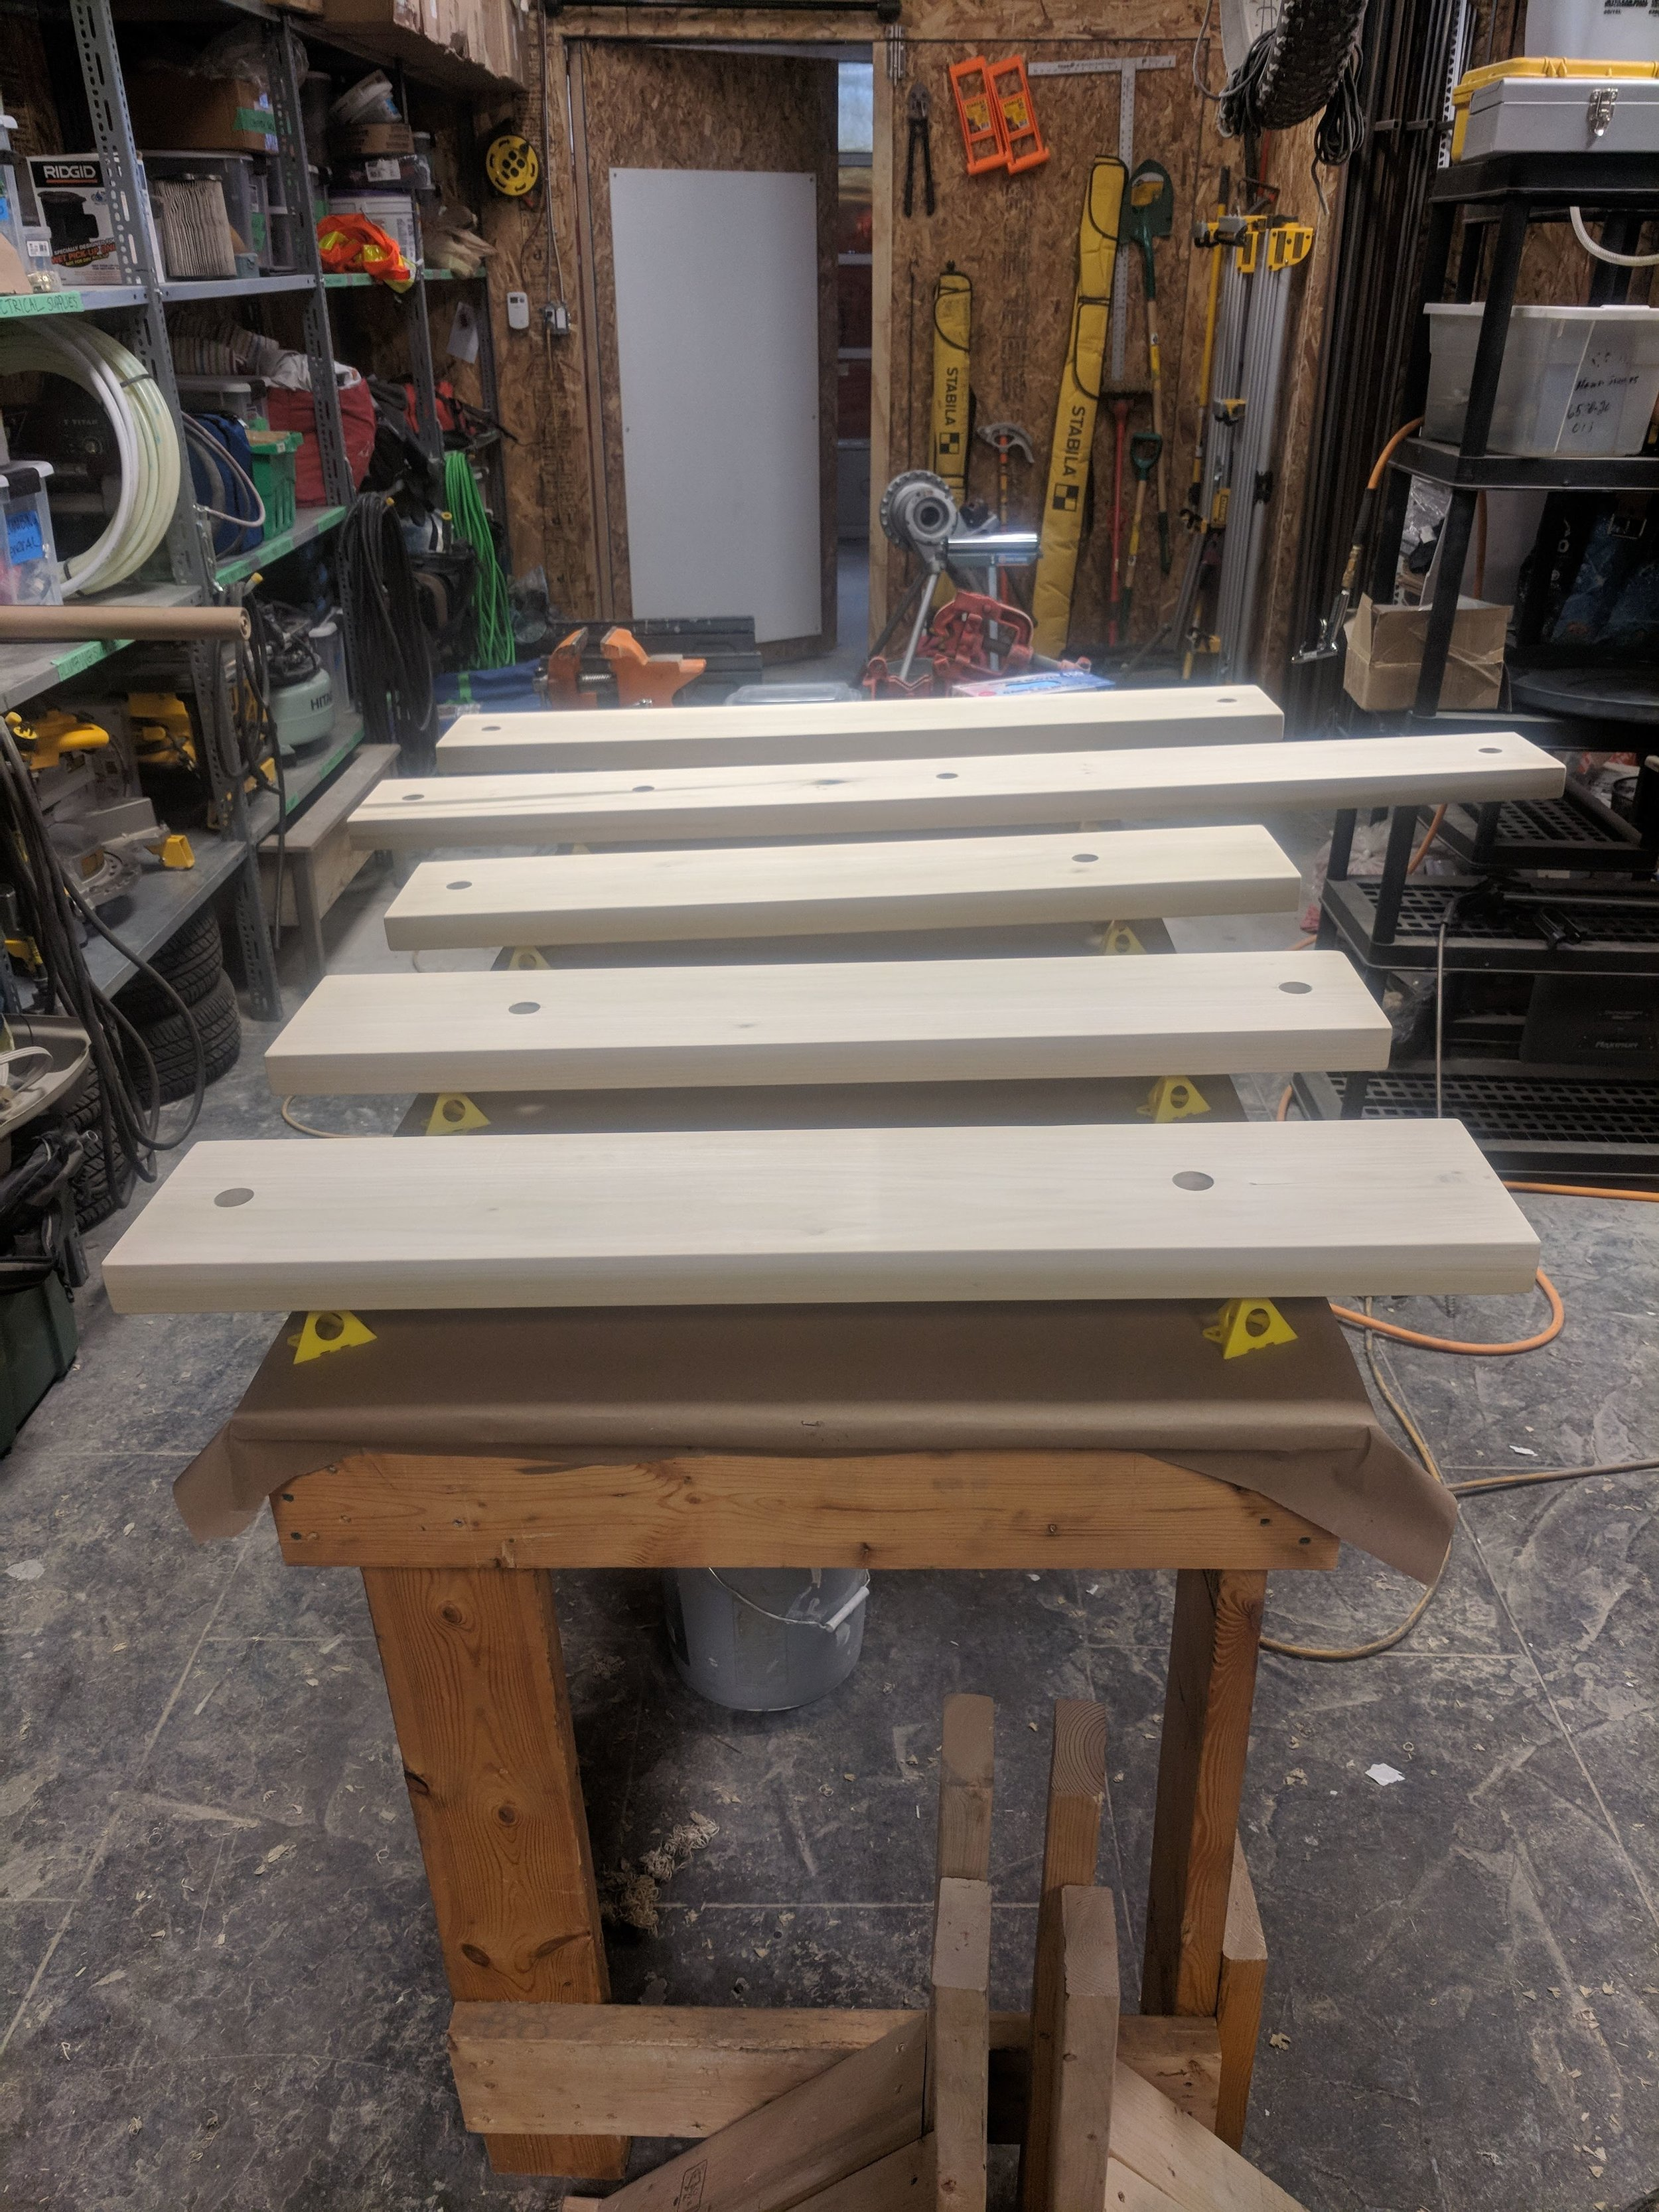 Shelves cut, sanded, and ready for stain.